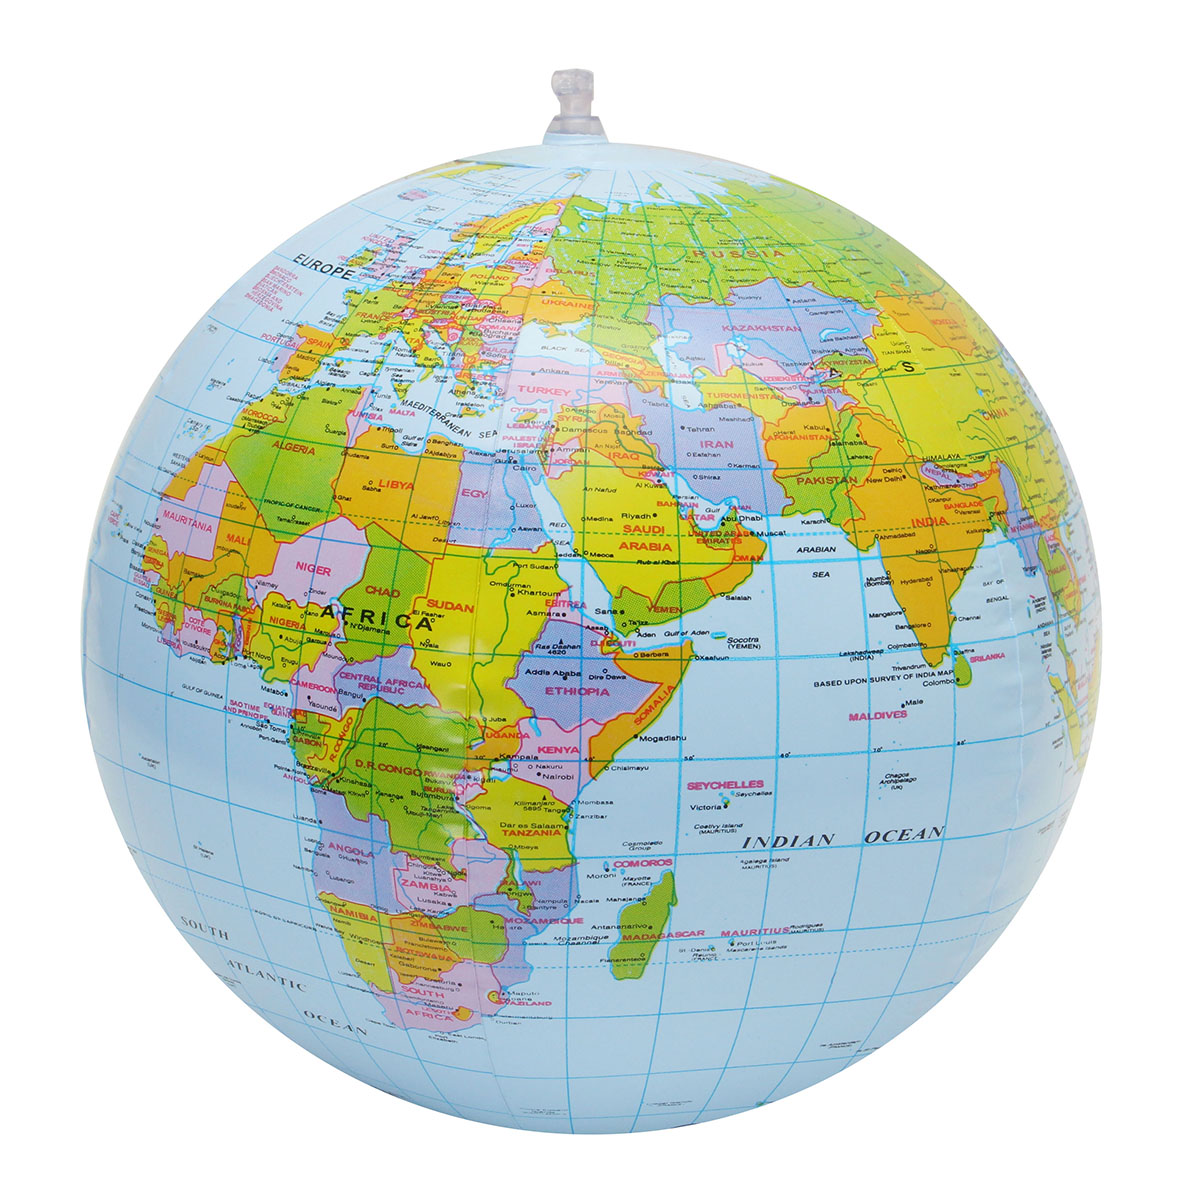 Globe Map Of The World New 30cm Inflatable Globe World Earth Ocean Map Ball Geography